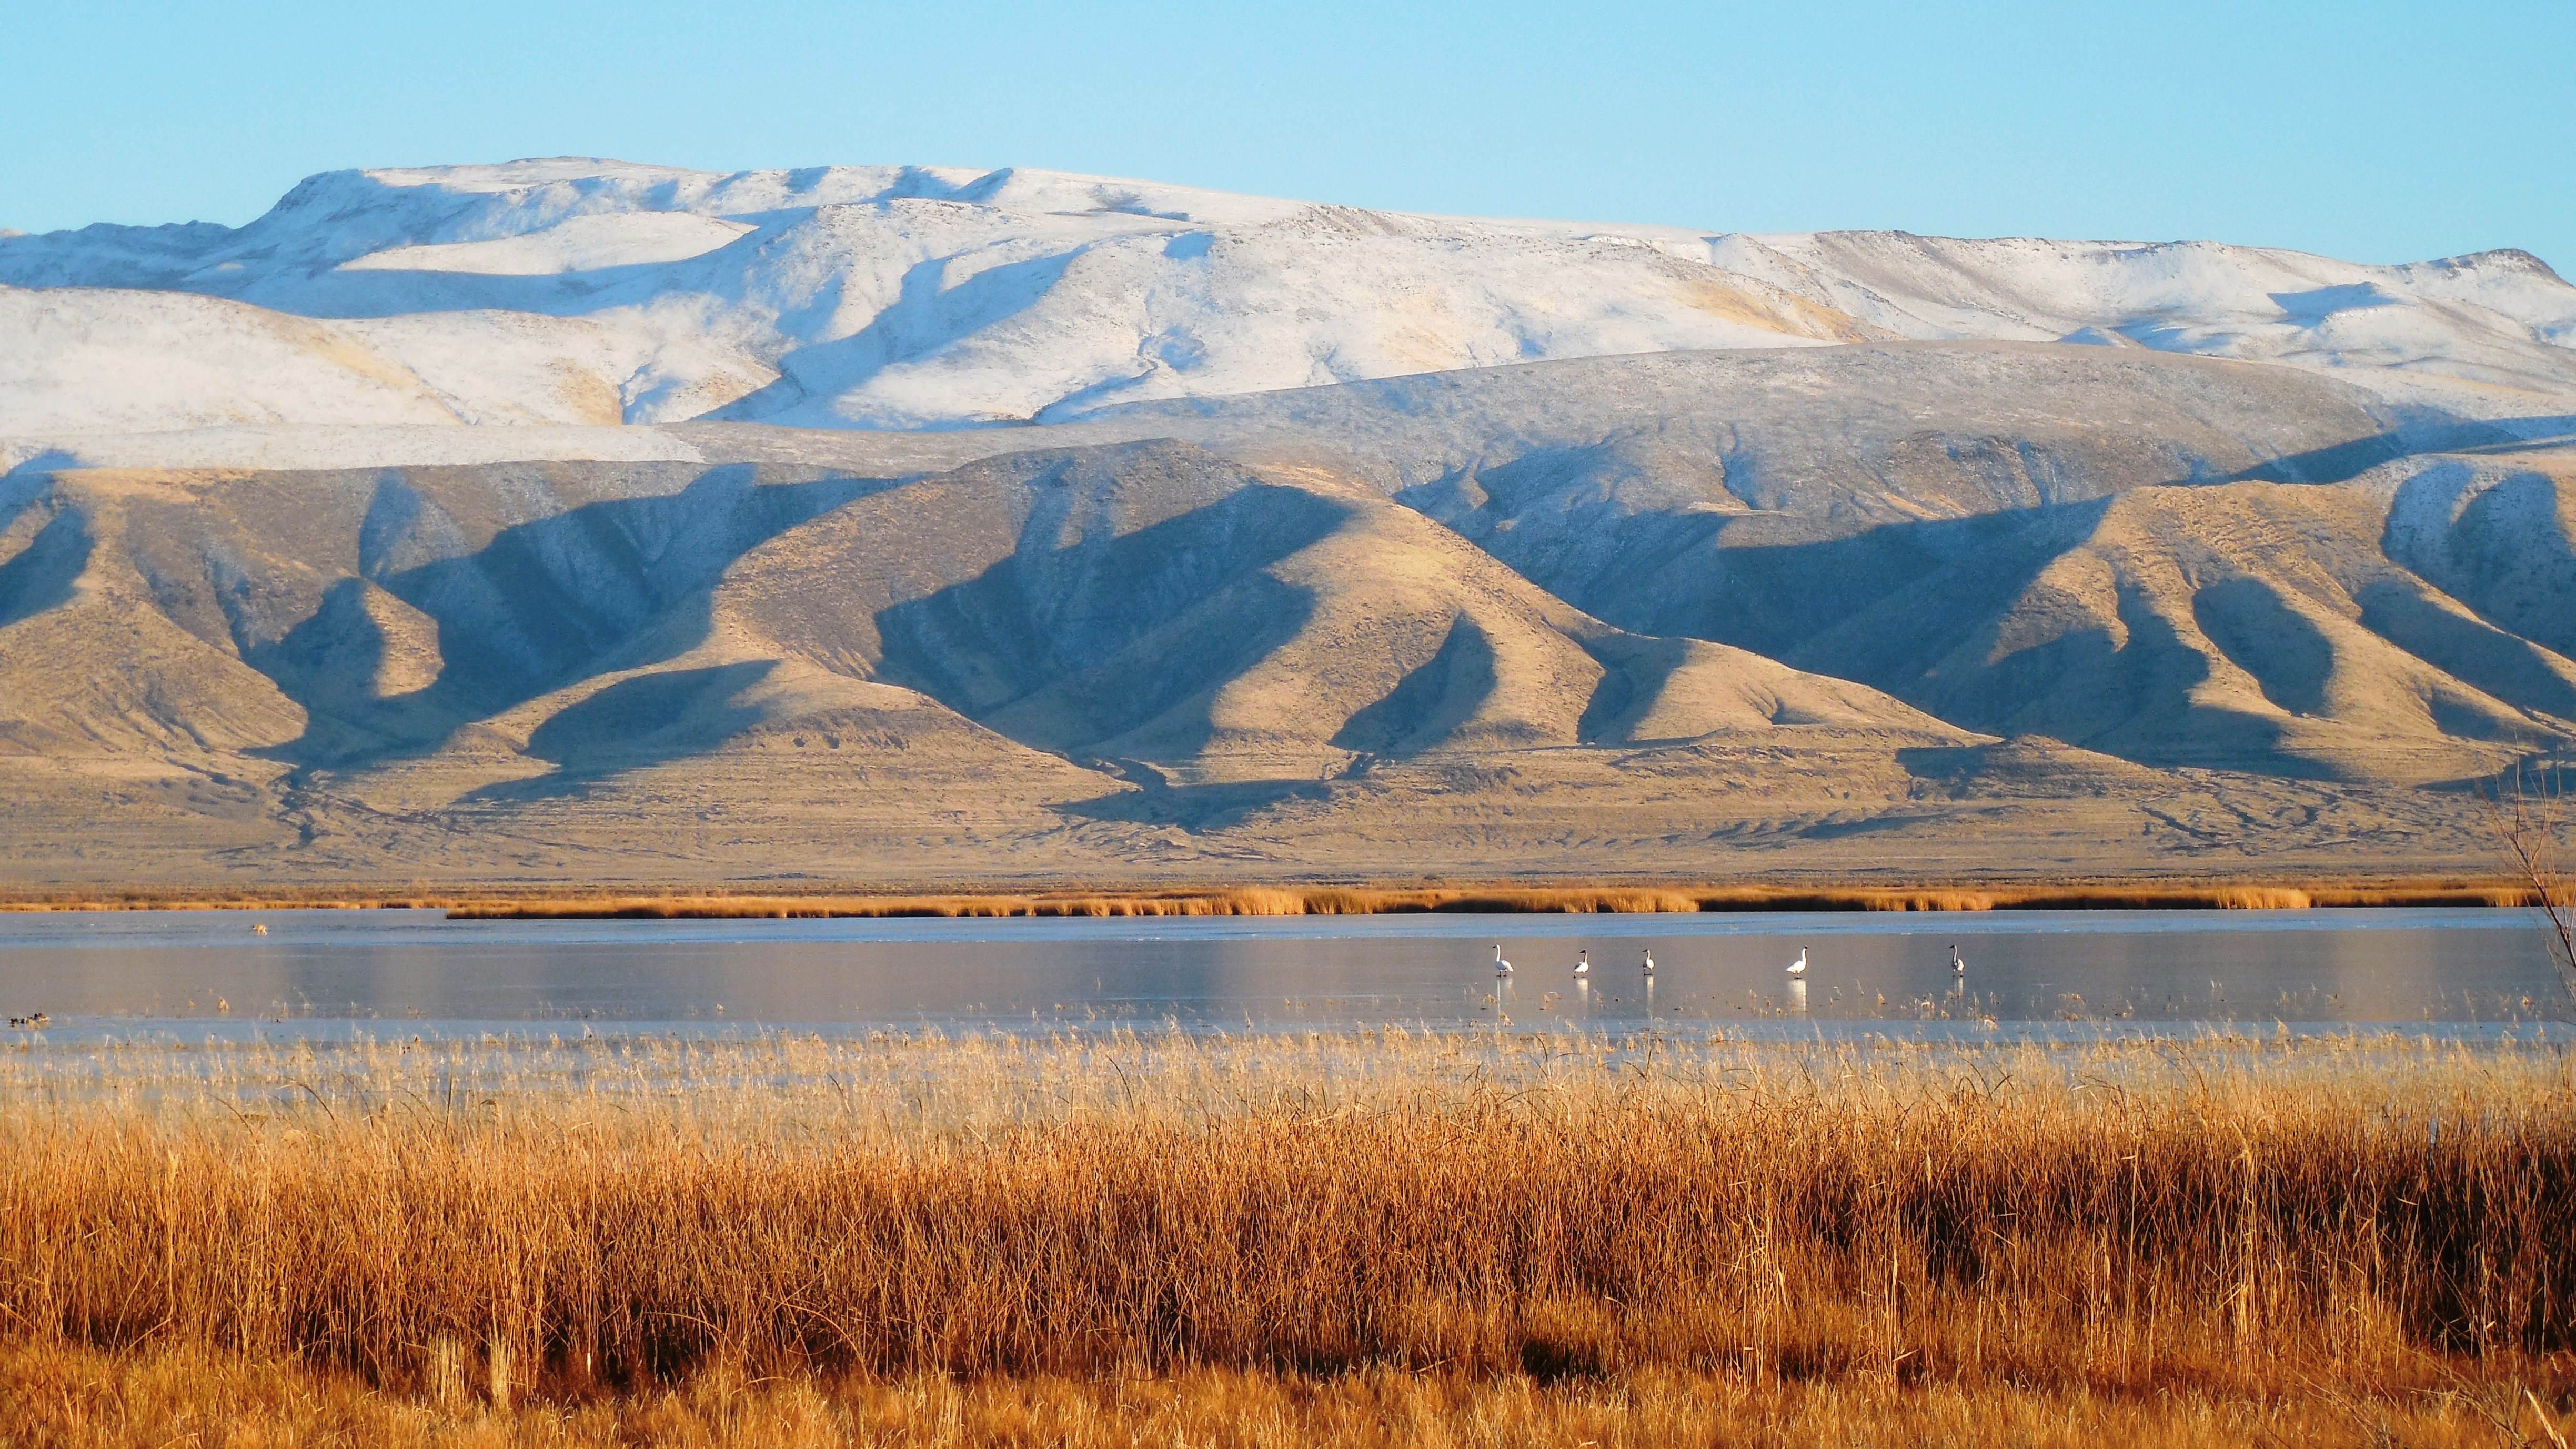 Stillwater_Range_from_Stillwater_Refuge_with_Tundra_Swans_Ryan_Carle.jpg